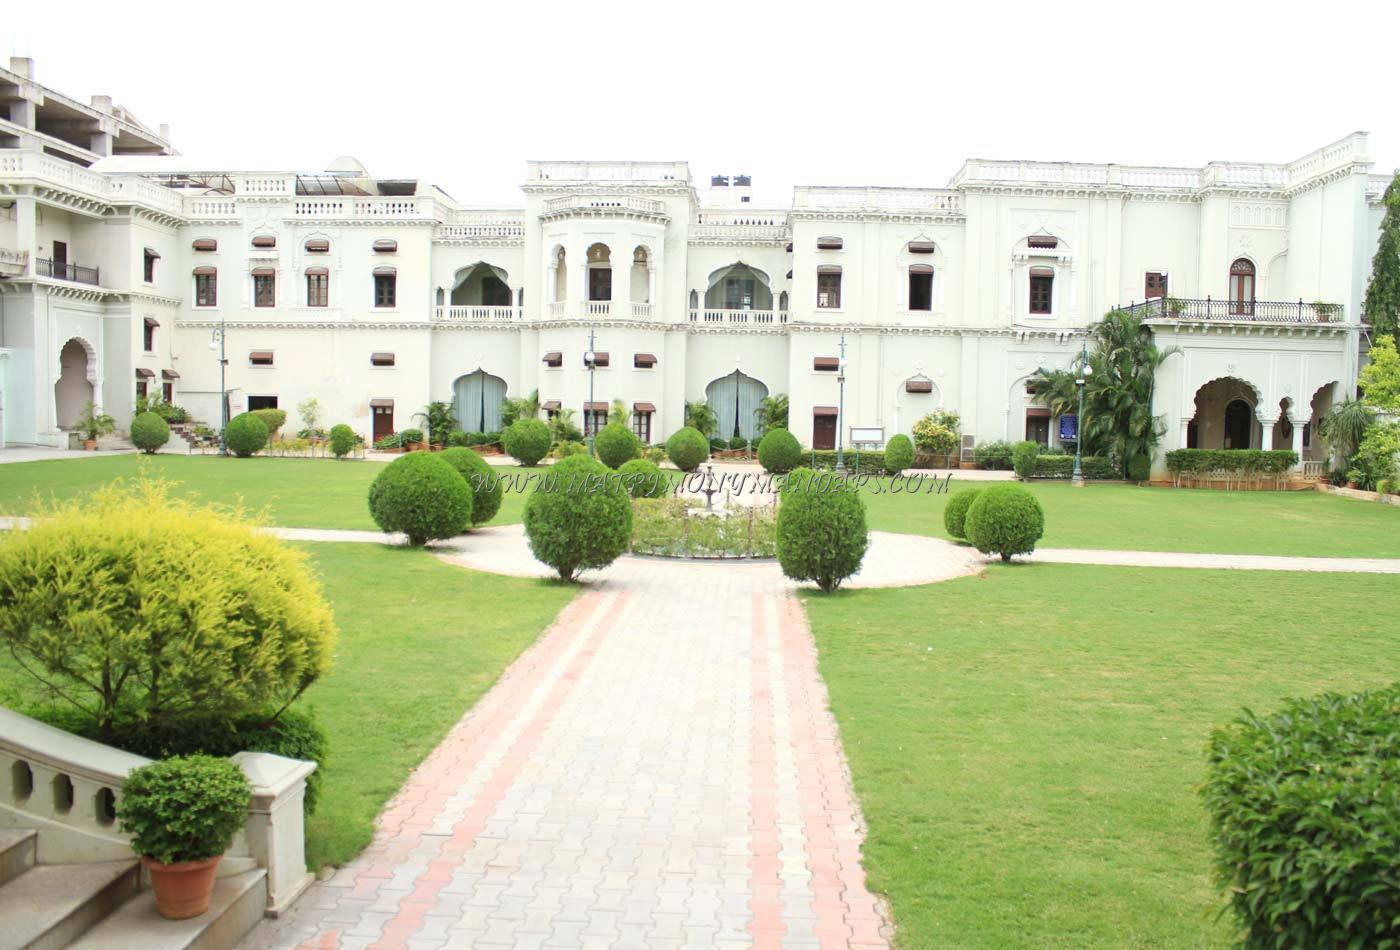 Find the availability of the Chiraan Fort Club - Main Lawn in Begumpet, Hyderabad and avail special offers